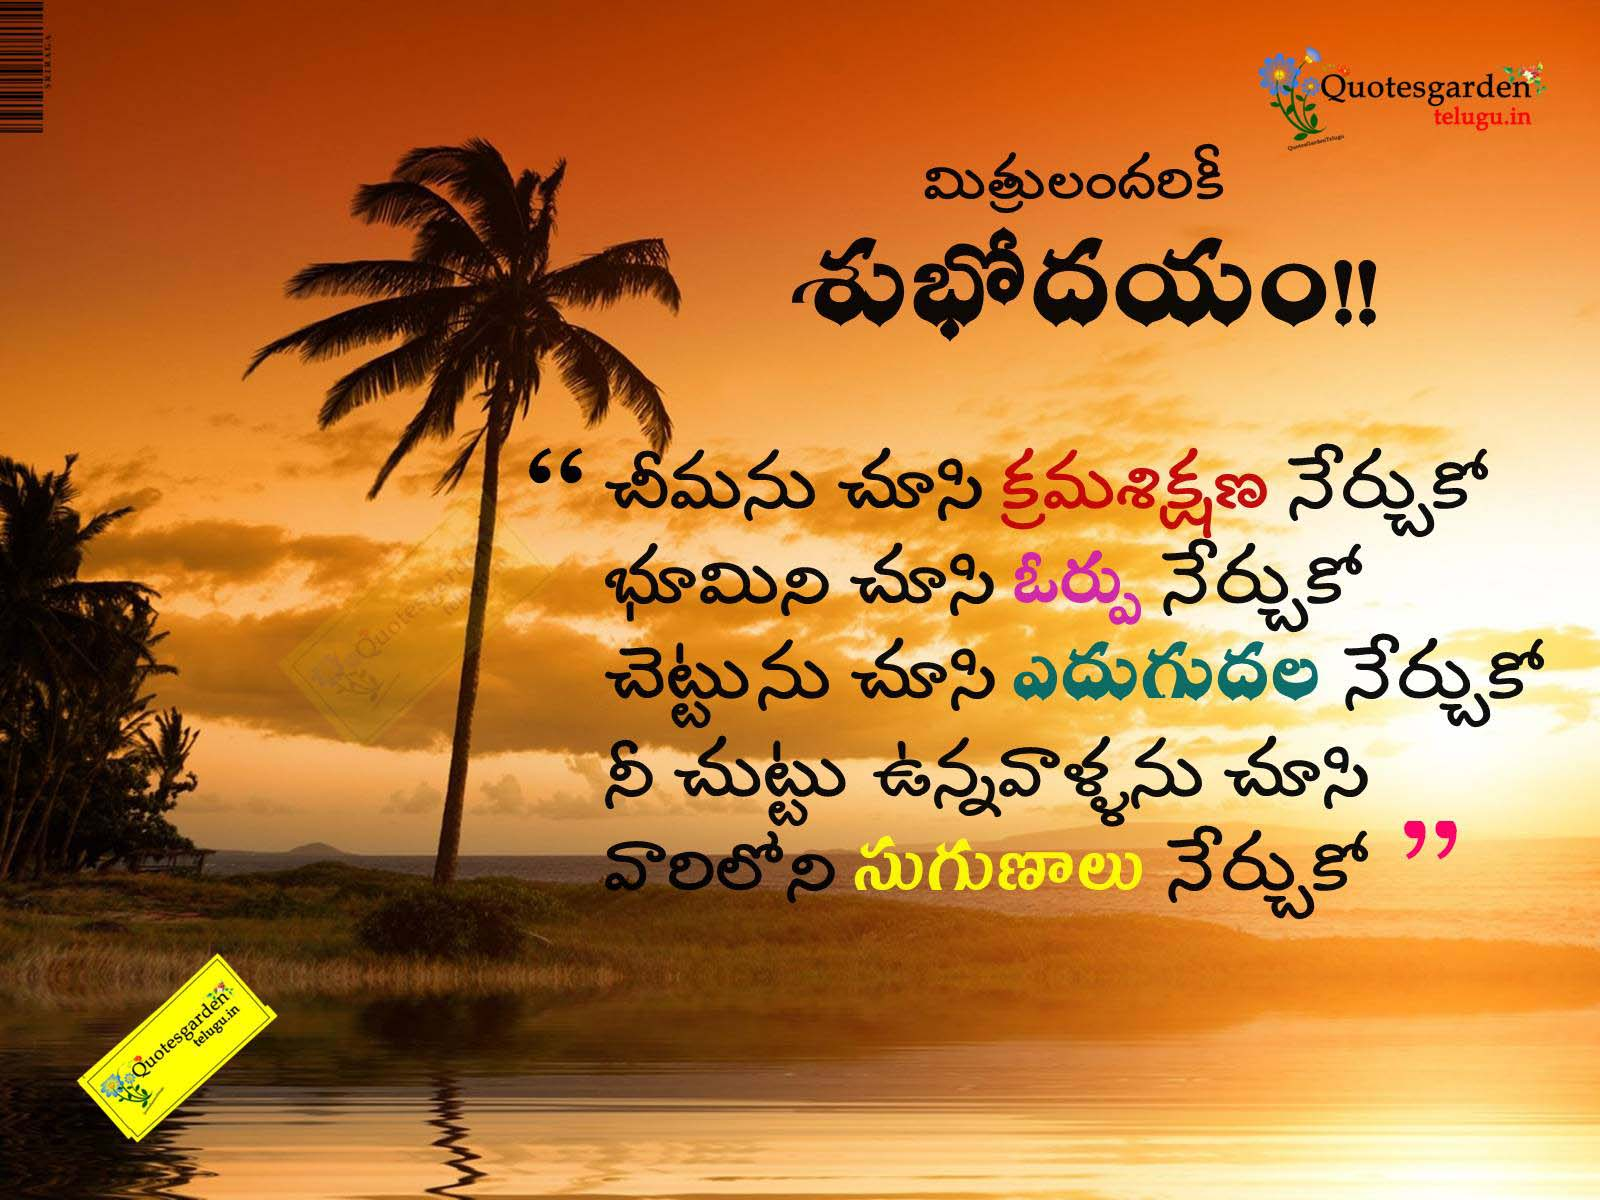 Telugu Quotes On Life Hd Images Life Related Quotation Images